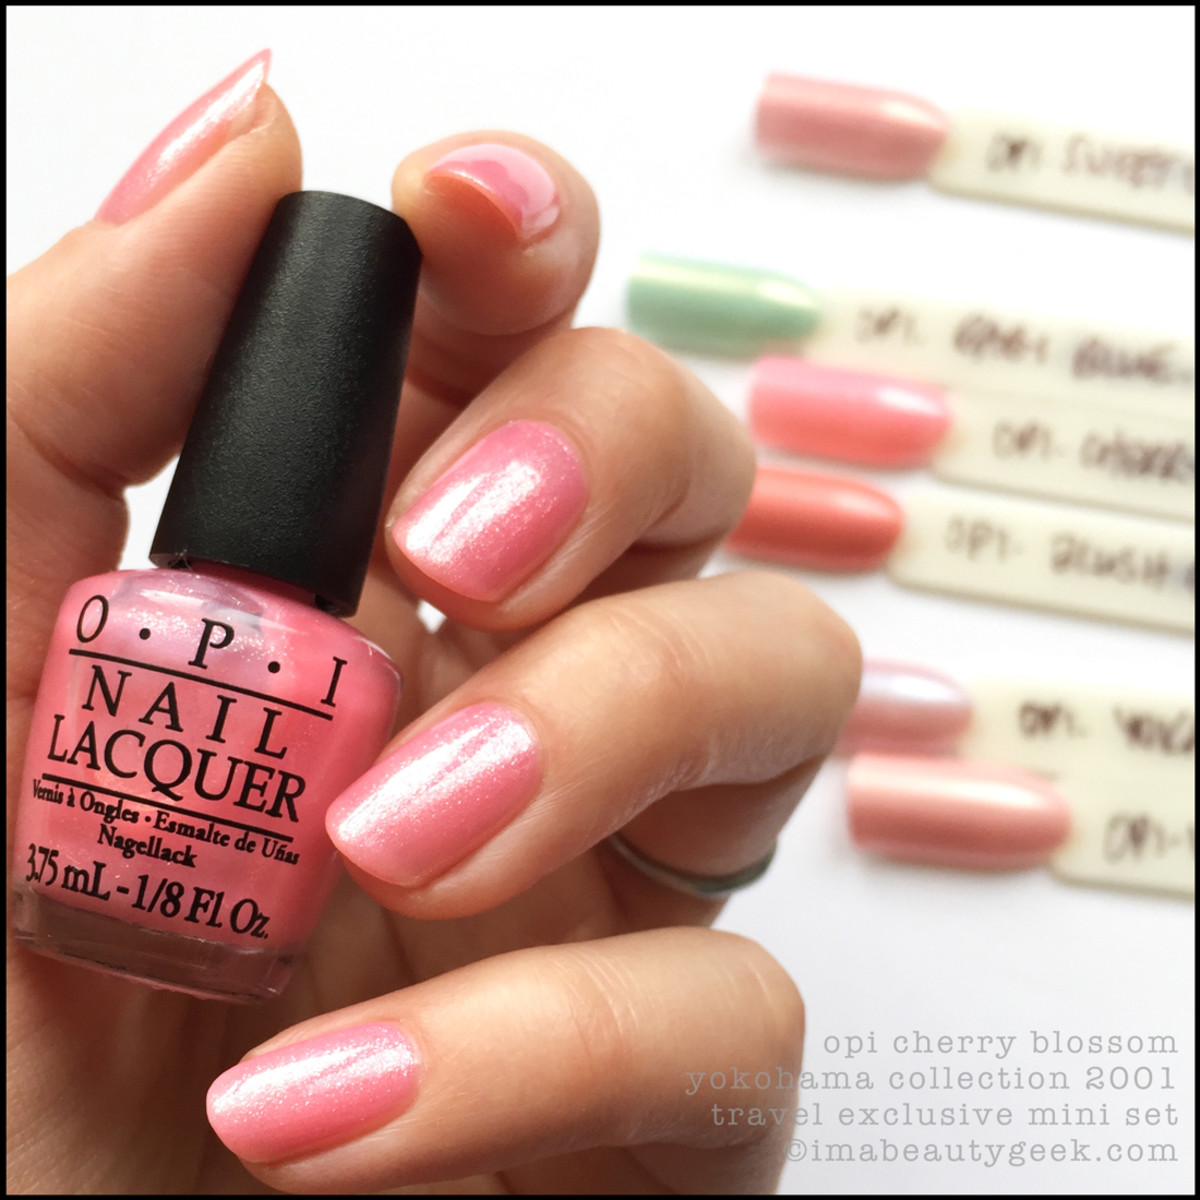 OPI Cherry Blossom_OPI Yokohama Collection 2001 Swatches